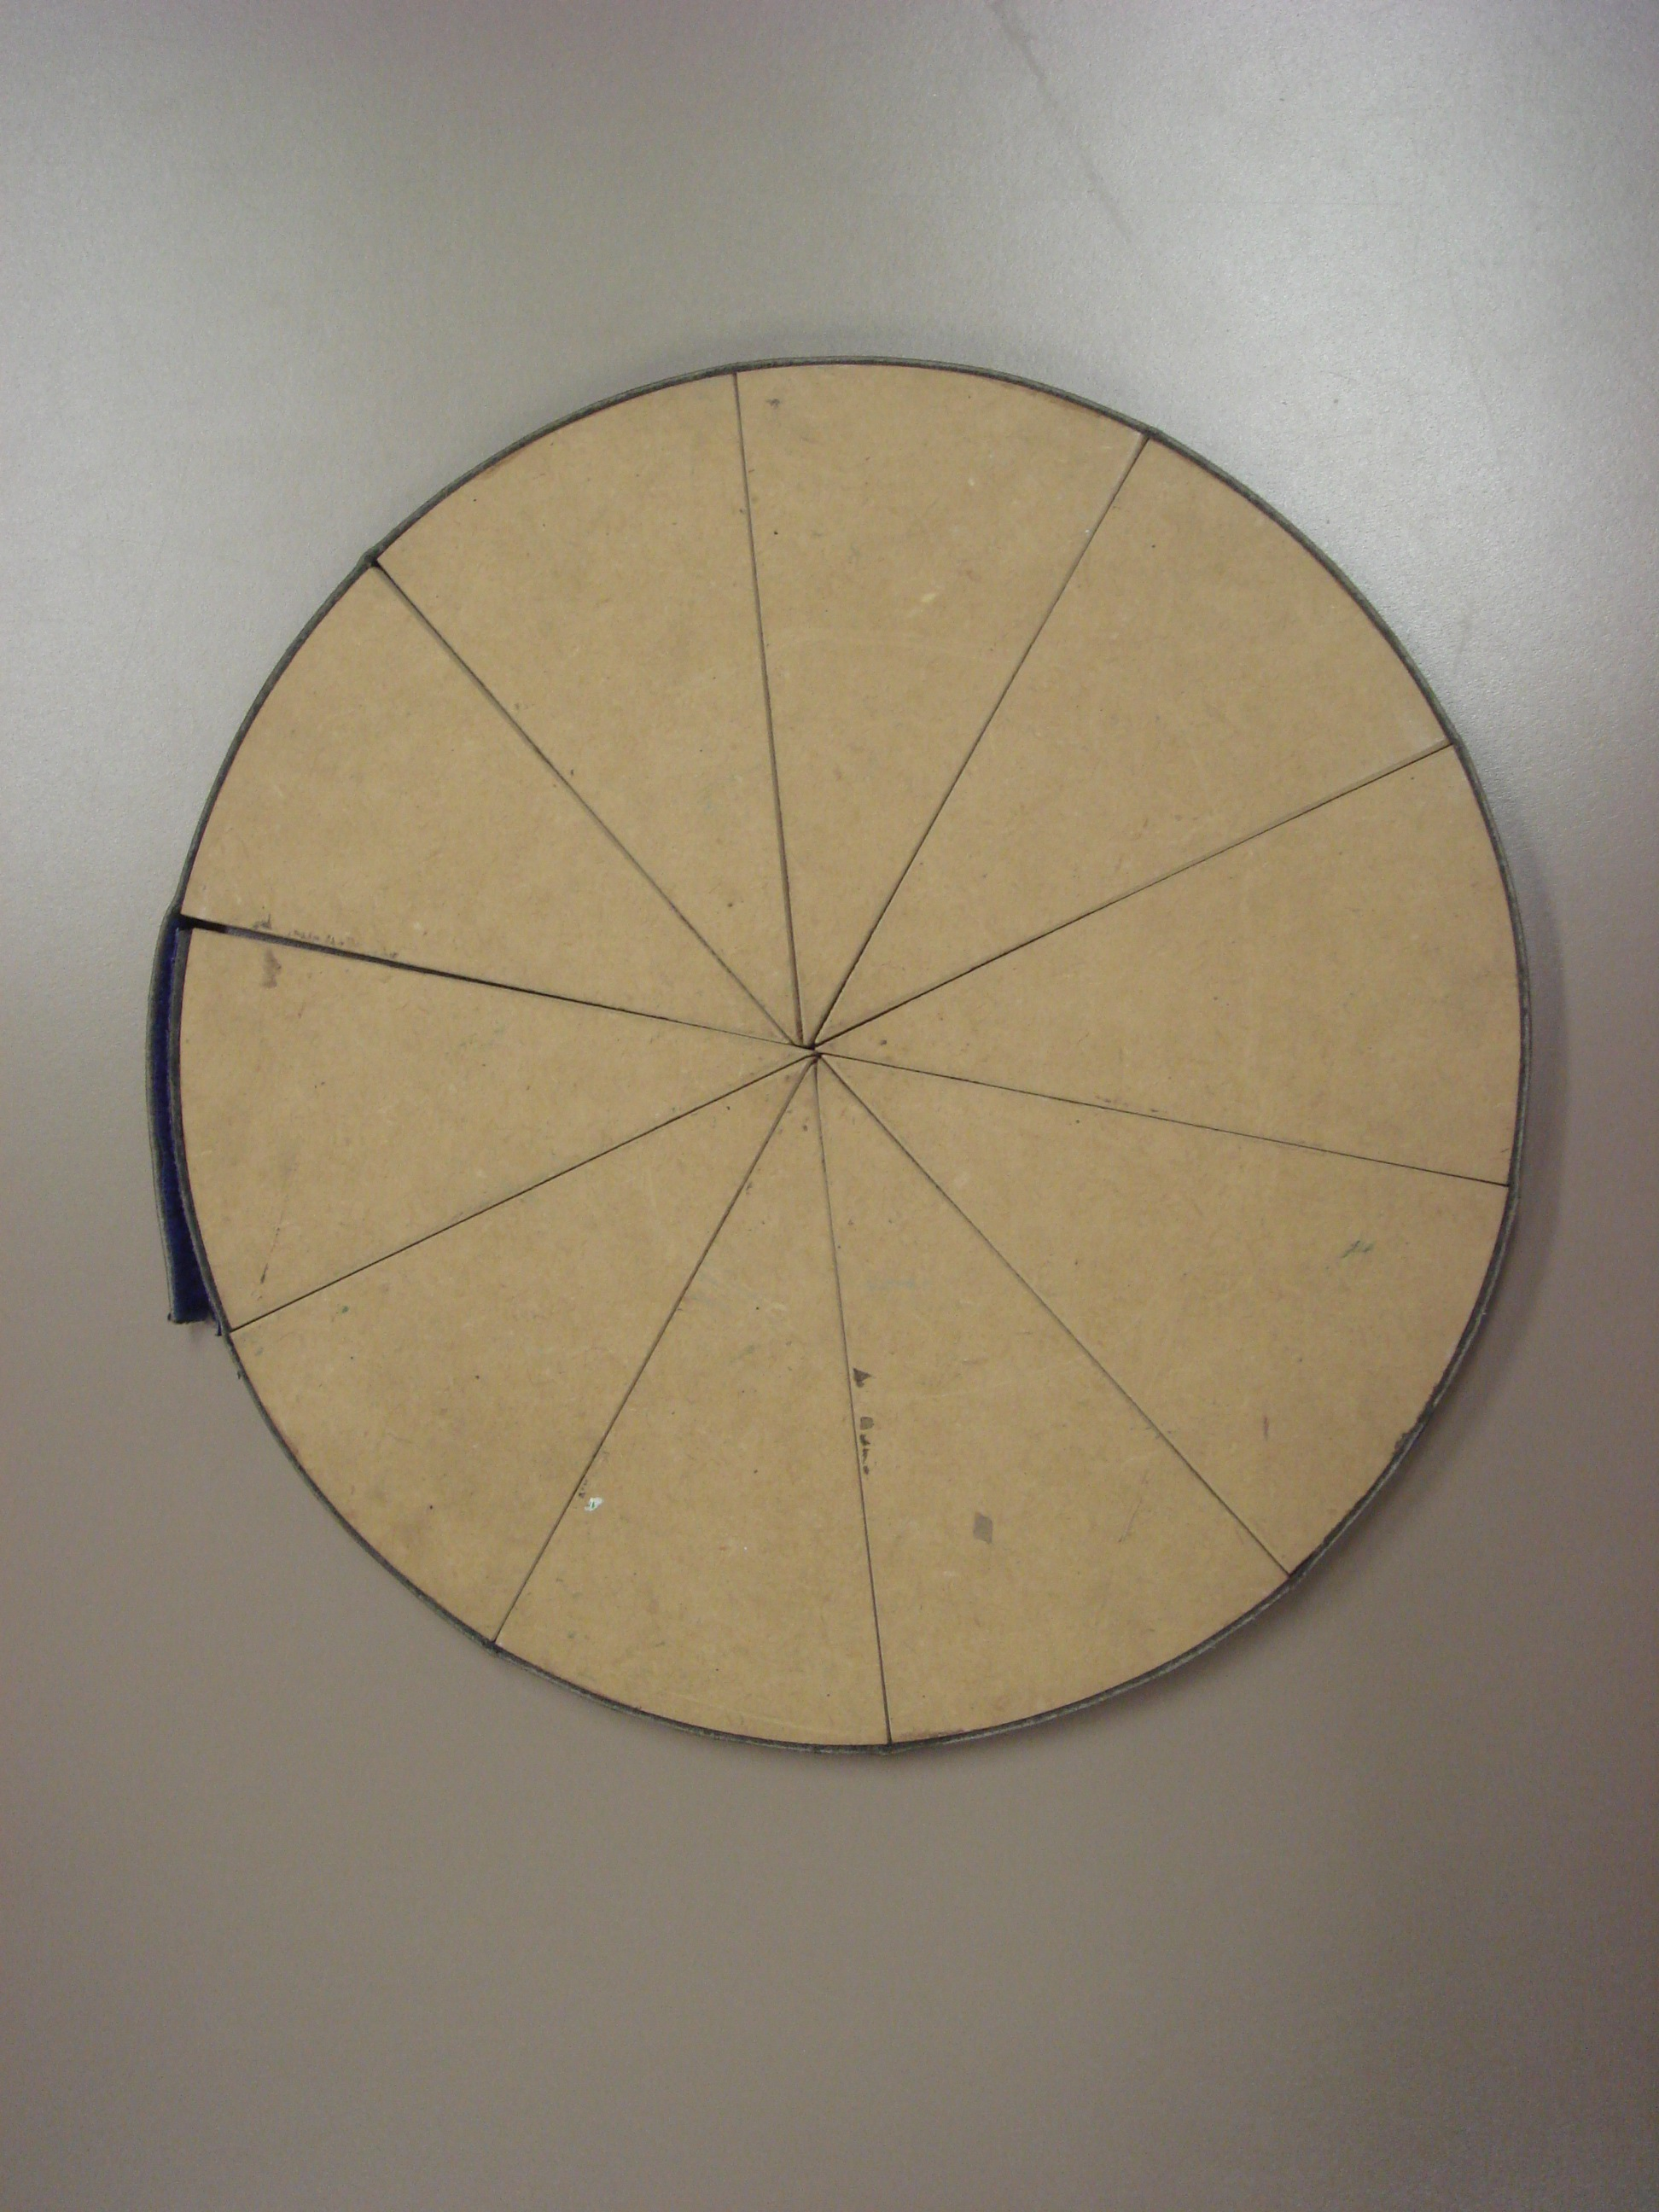 Home-made wooden disc, divided into ten equal pieces.